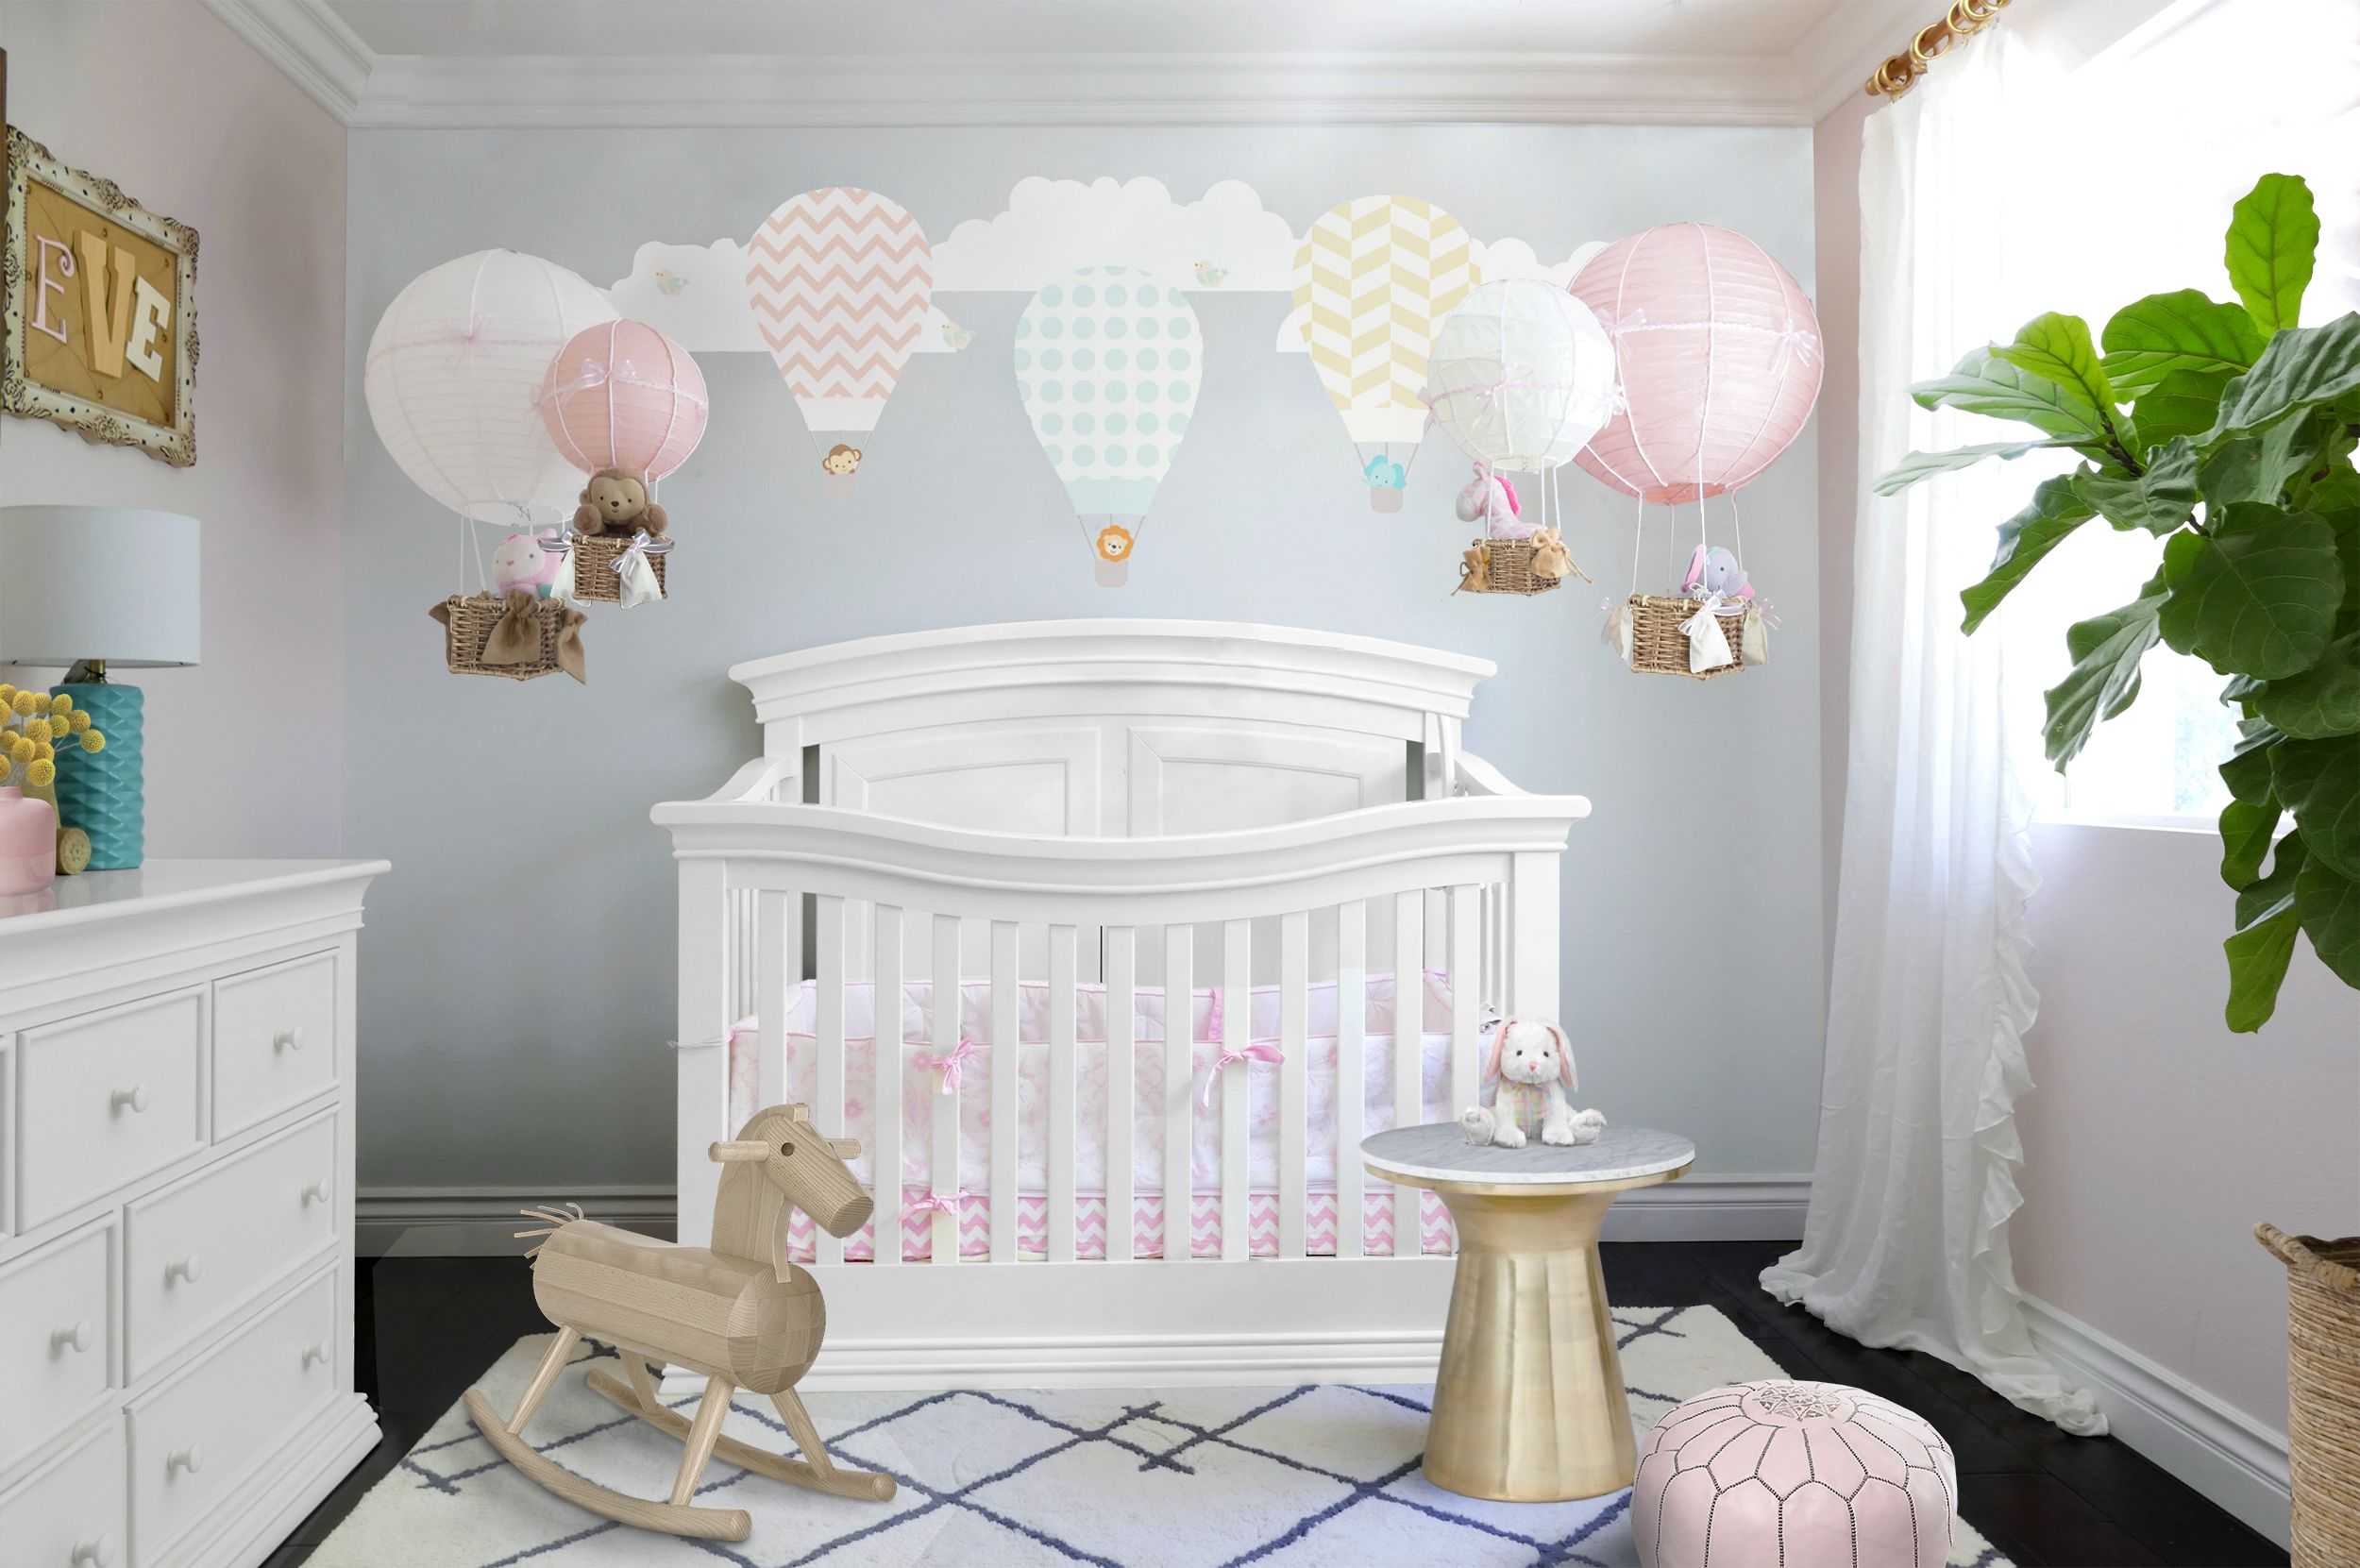 Nursery Themes For Girls 15 Girls Room Ideas Baby Toddler Tween Girl Bedroom Decorating